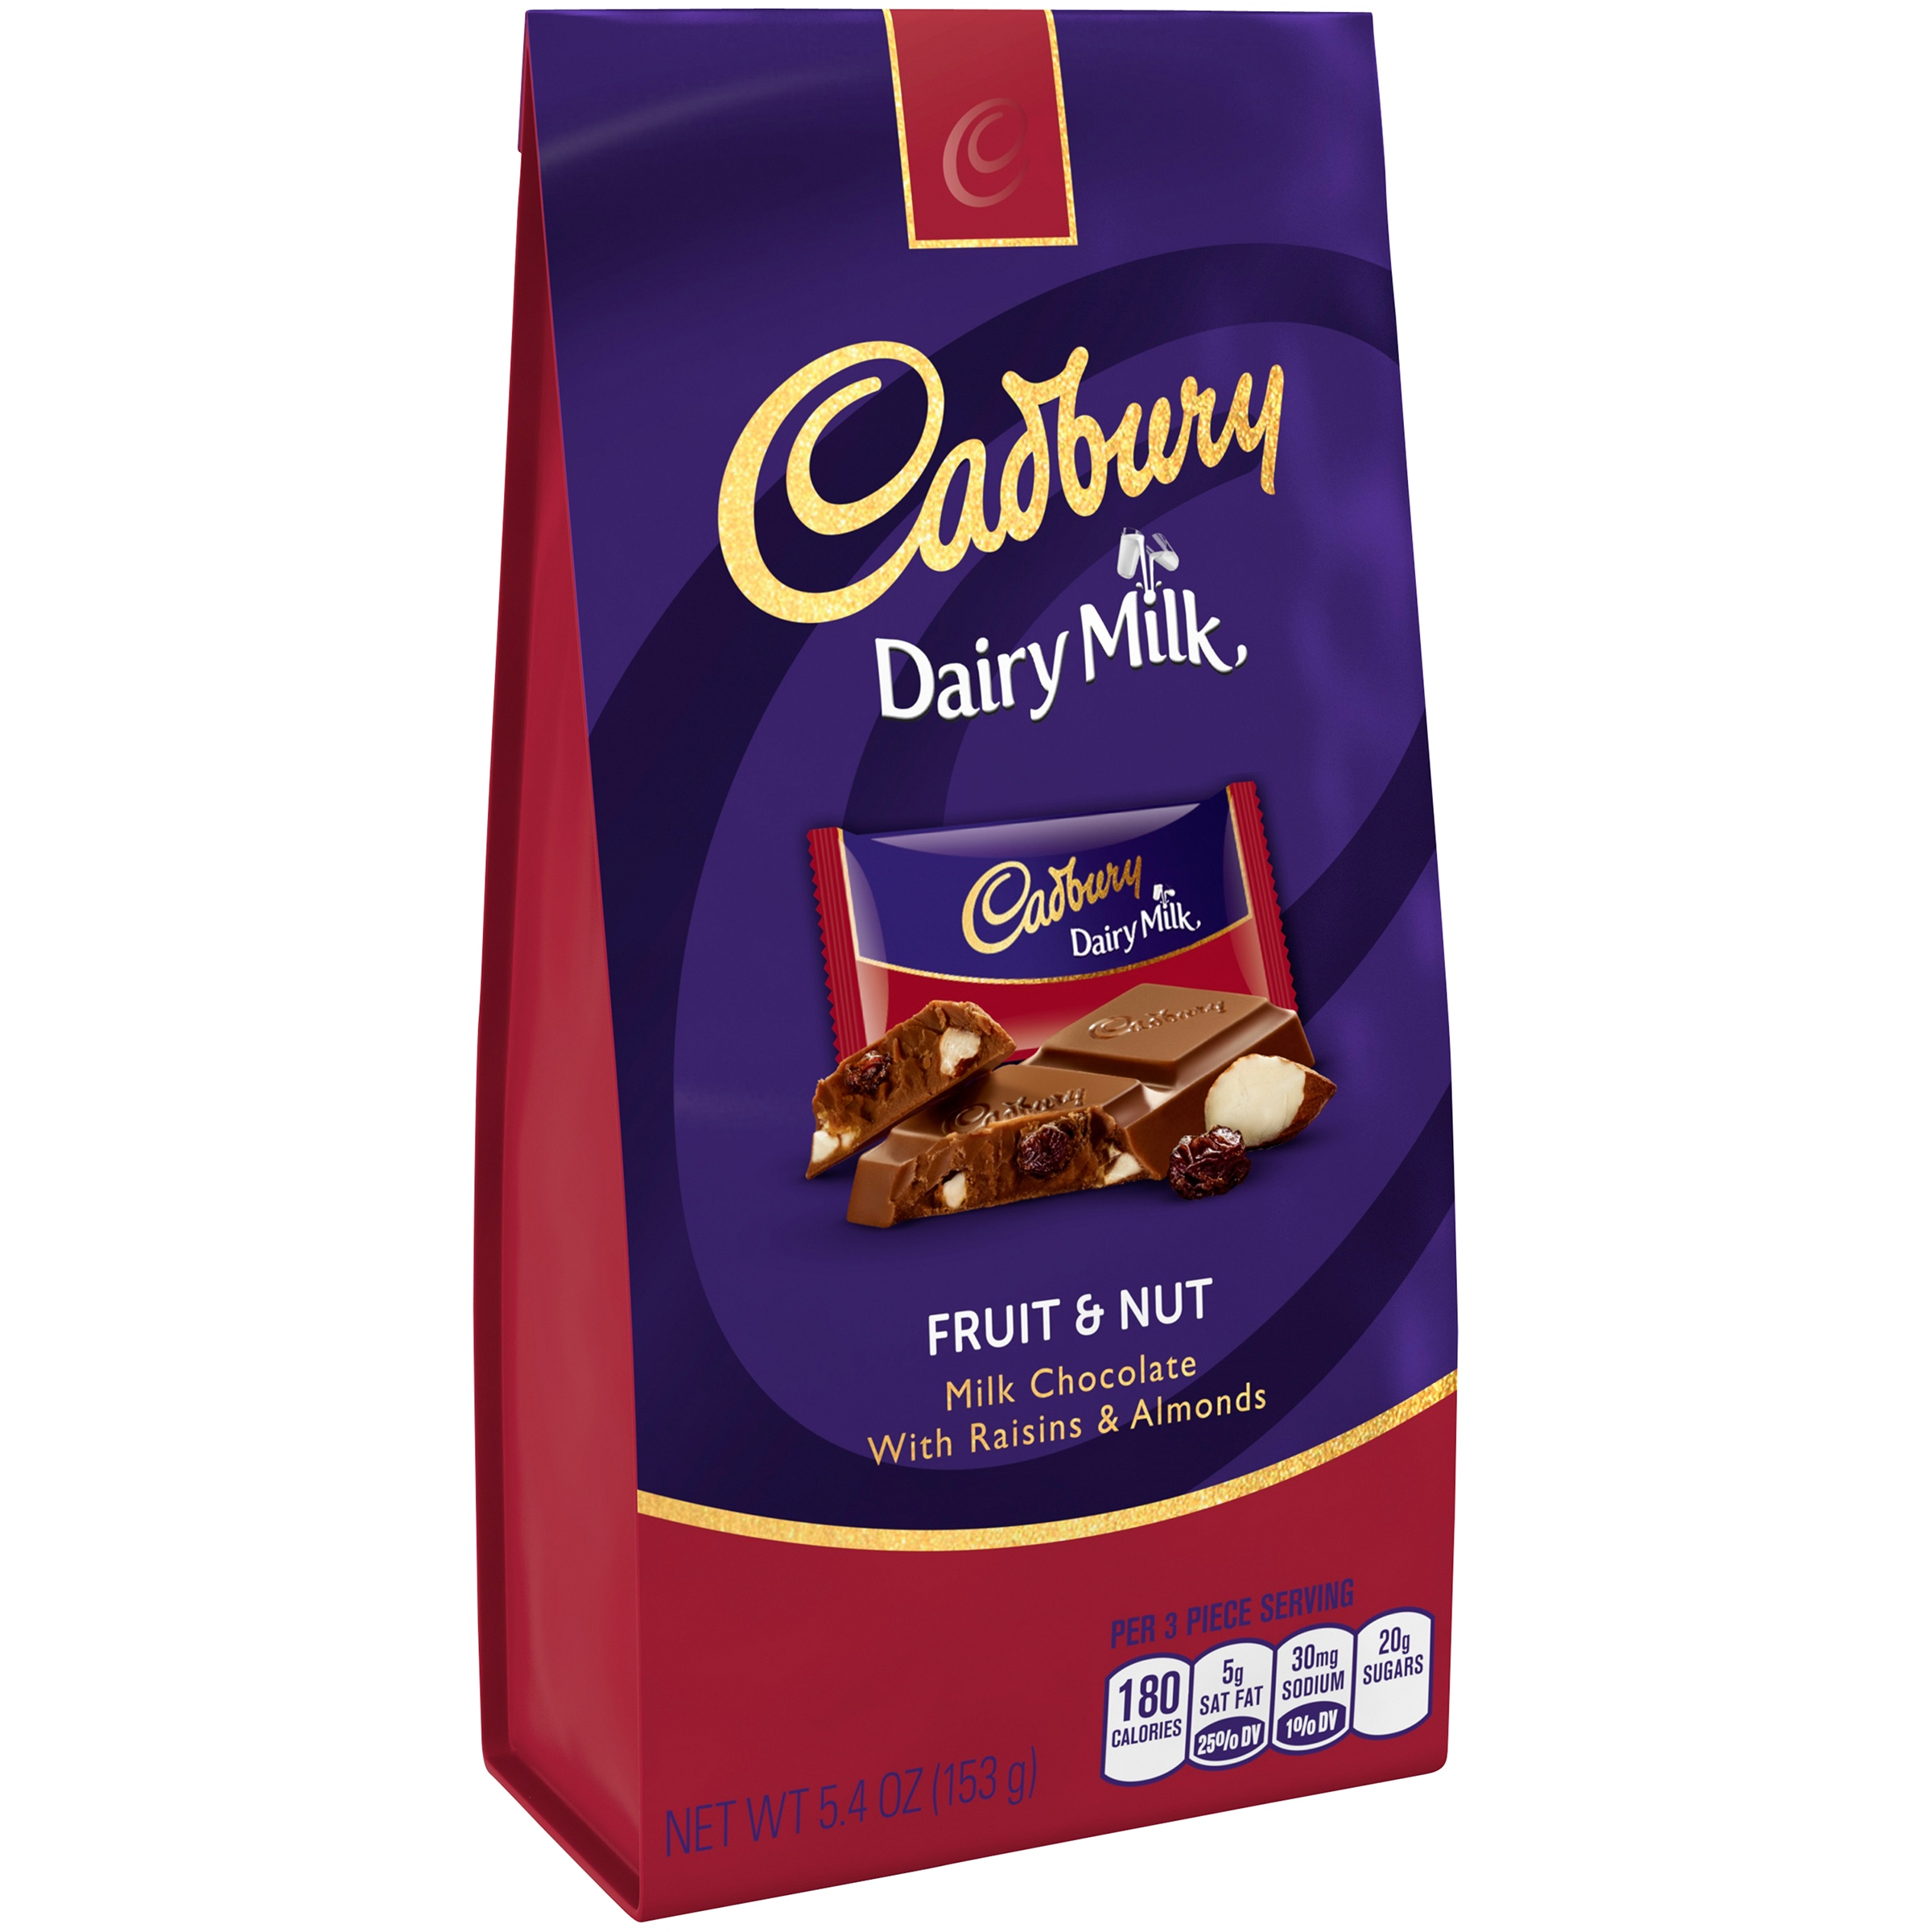 Cadbury Dairy Milk Fruit & Nut Milk Chocolate, 5.4 oz by The Hershey Company